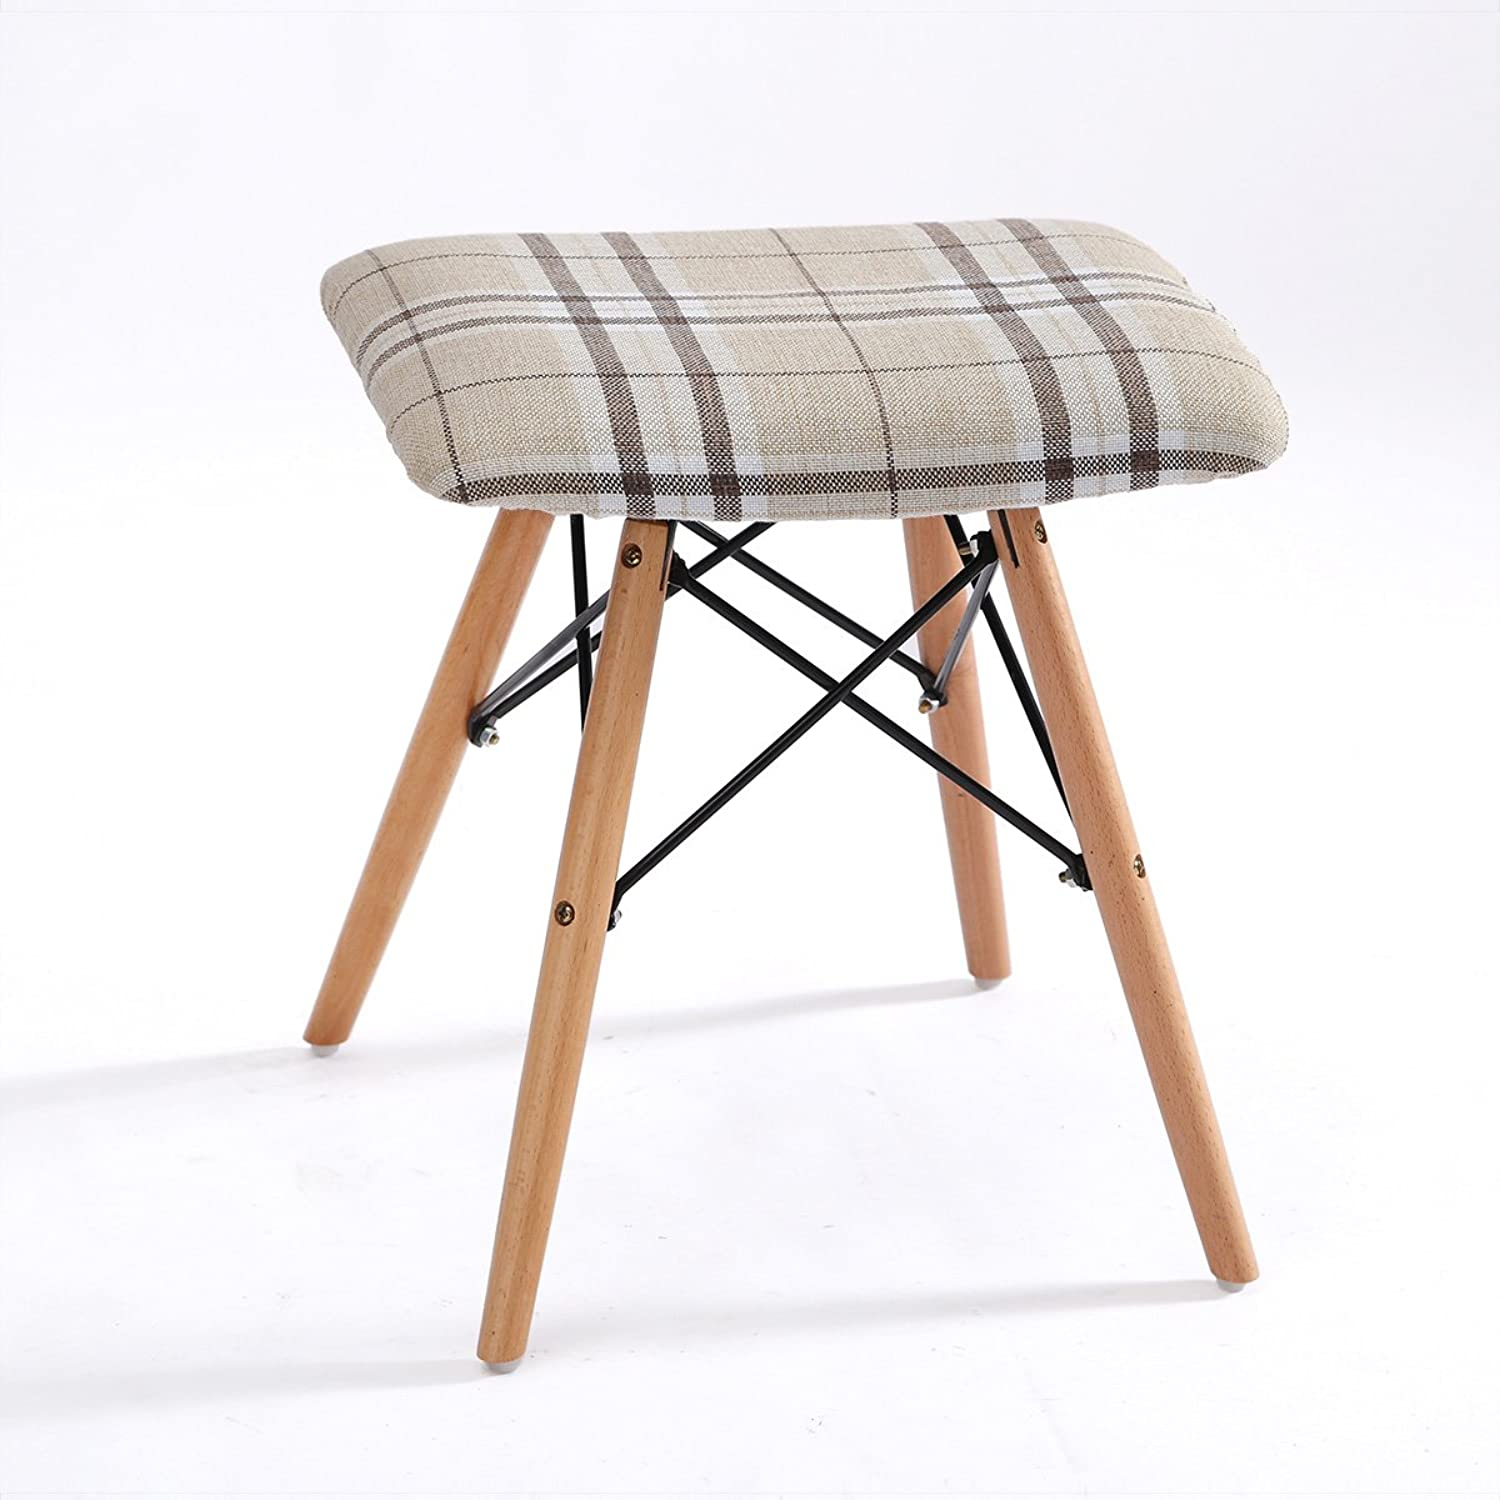 Feifei Bar Stool Solid Wood + Fabric + Iron Modern Minimalist Leisure Household Practical Stool (color   02)